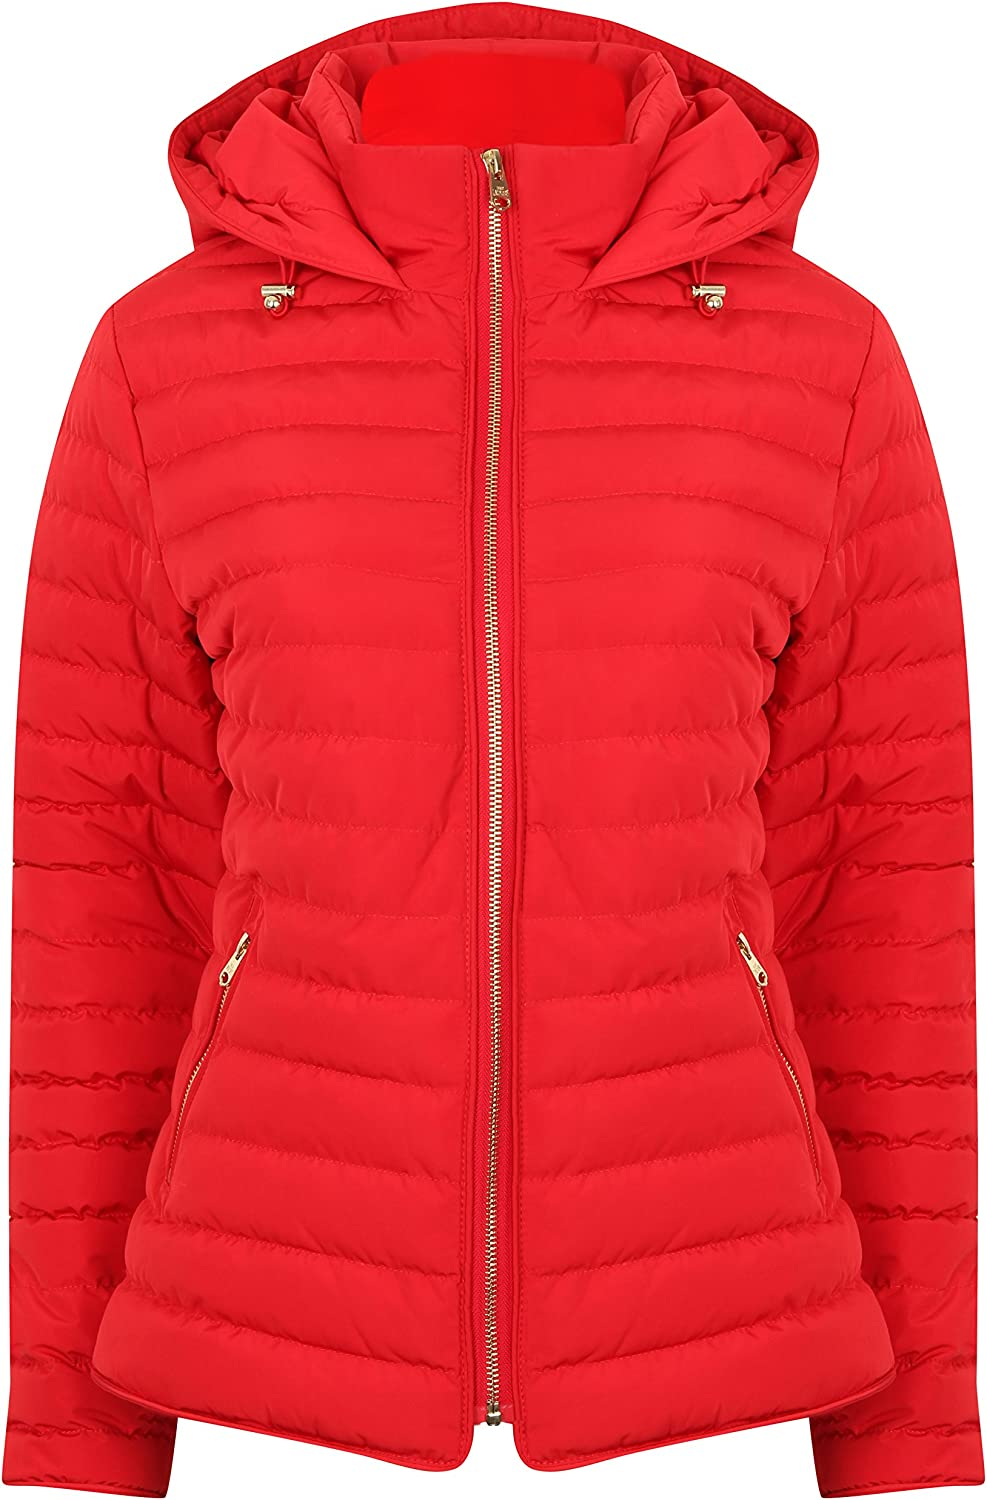 Tokyo Laundry Ladies Ginger' Quilted Jacket